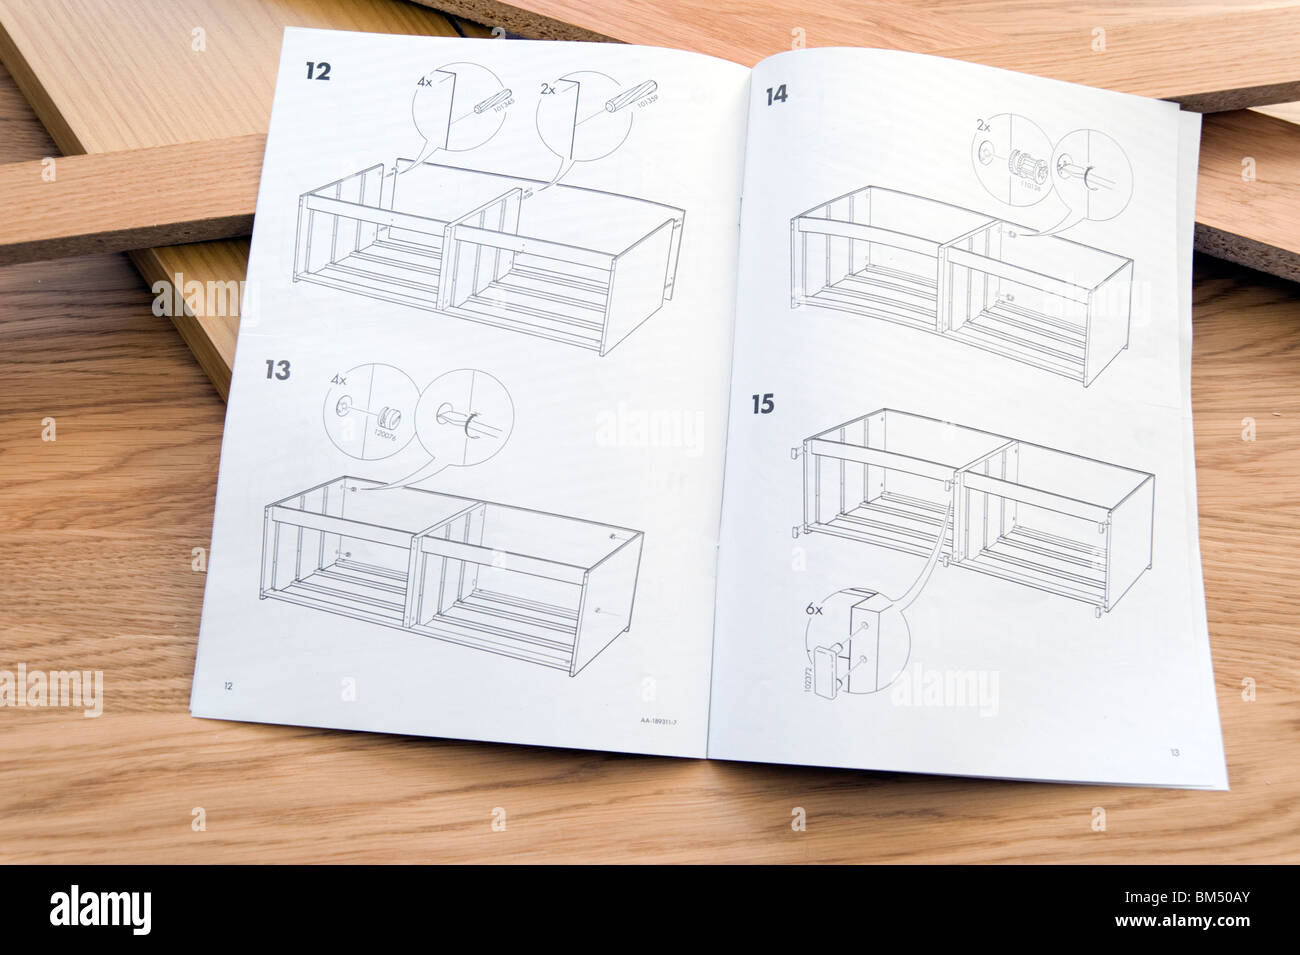 Self Assembly Instructions For Ikea Flat Pack Furniture